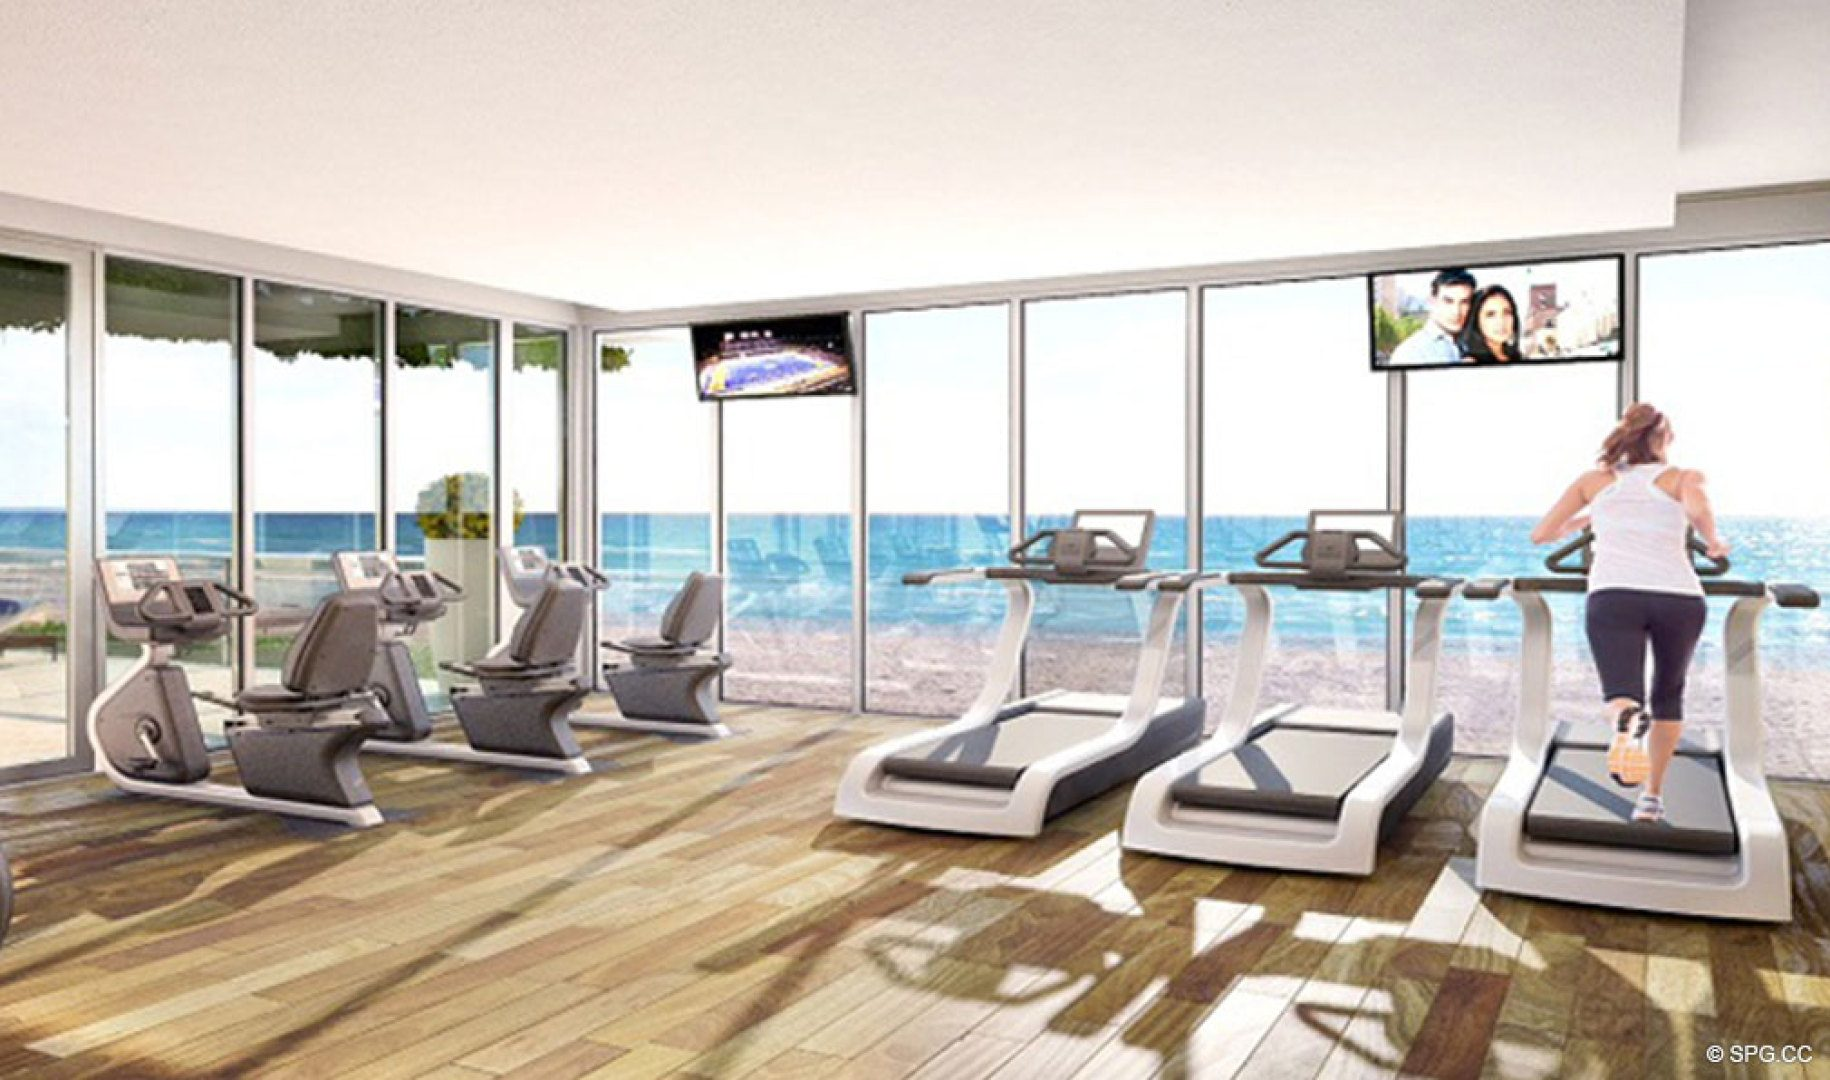 State of the Art Fitness Center at Sage Beach, Luxury Oceanfront Condos in Hollywood Beach Florida 33019